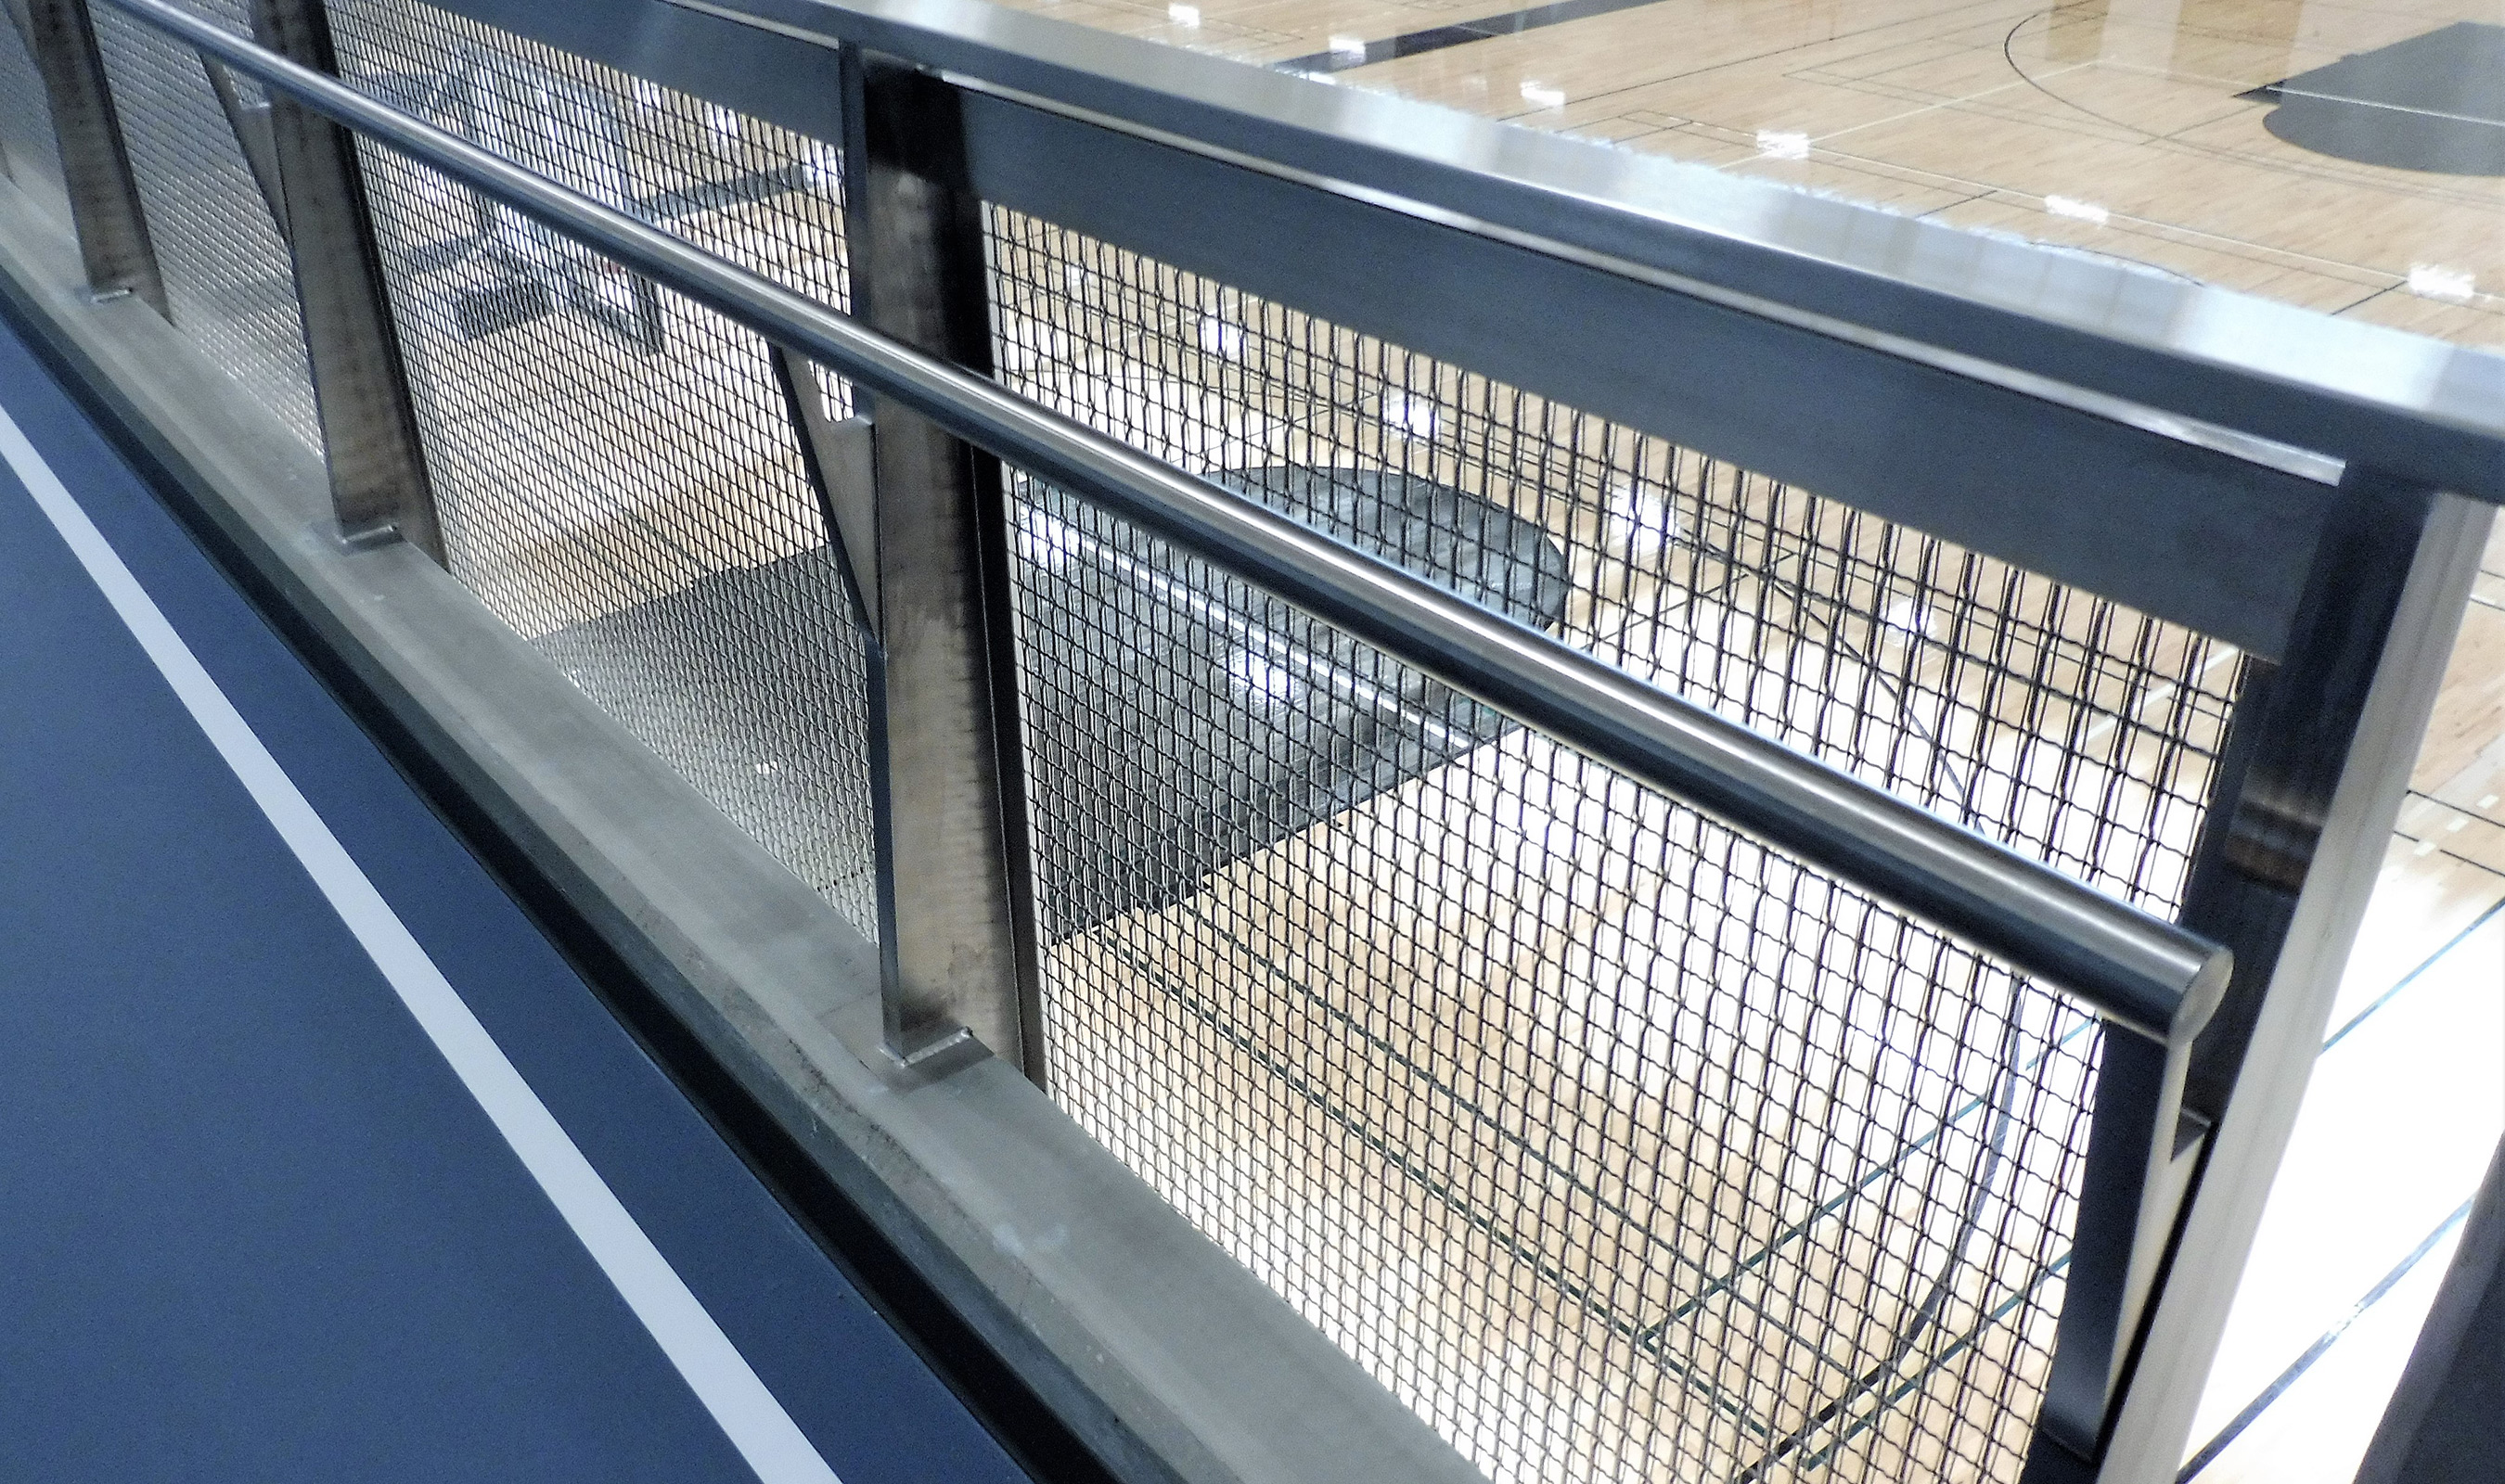 Banker Wire's SJD-7 is a well-chose addition as railing infill at this YMCA facility for it's large percent open area and rigidity.